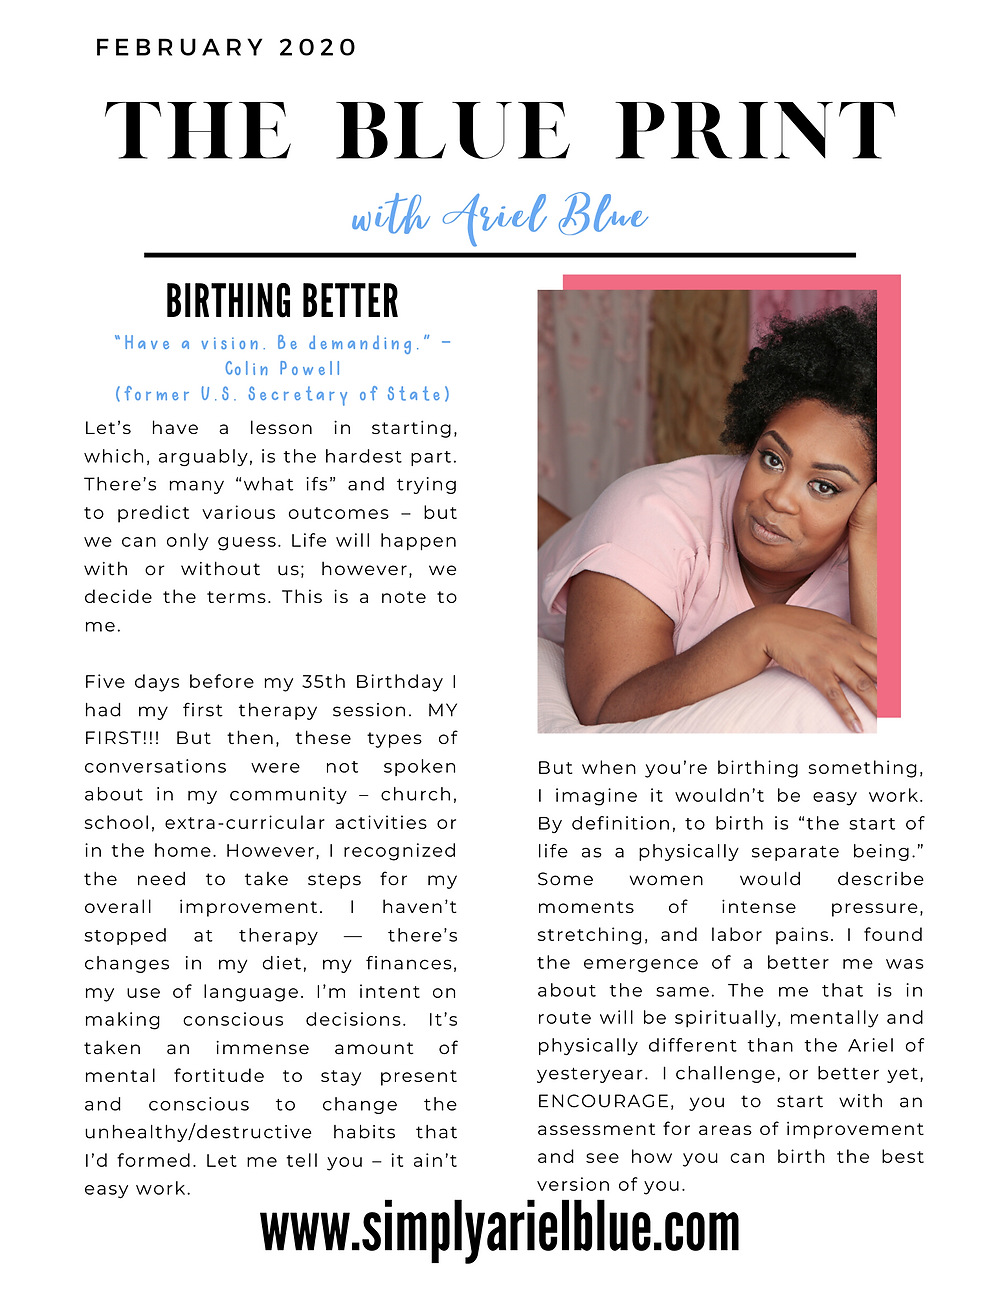 The Blue Print | February 2020 | Page 1 | Birthing Better